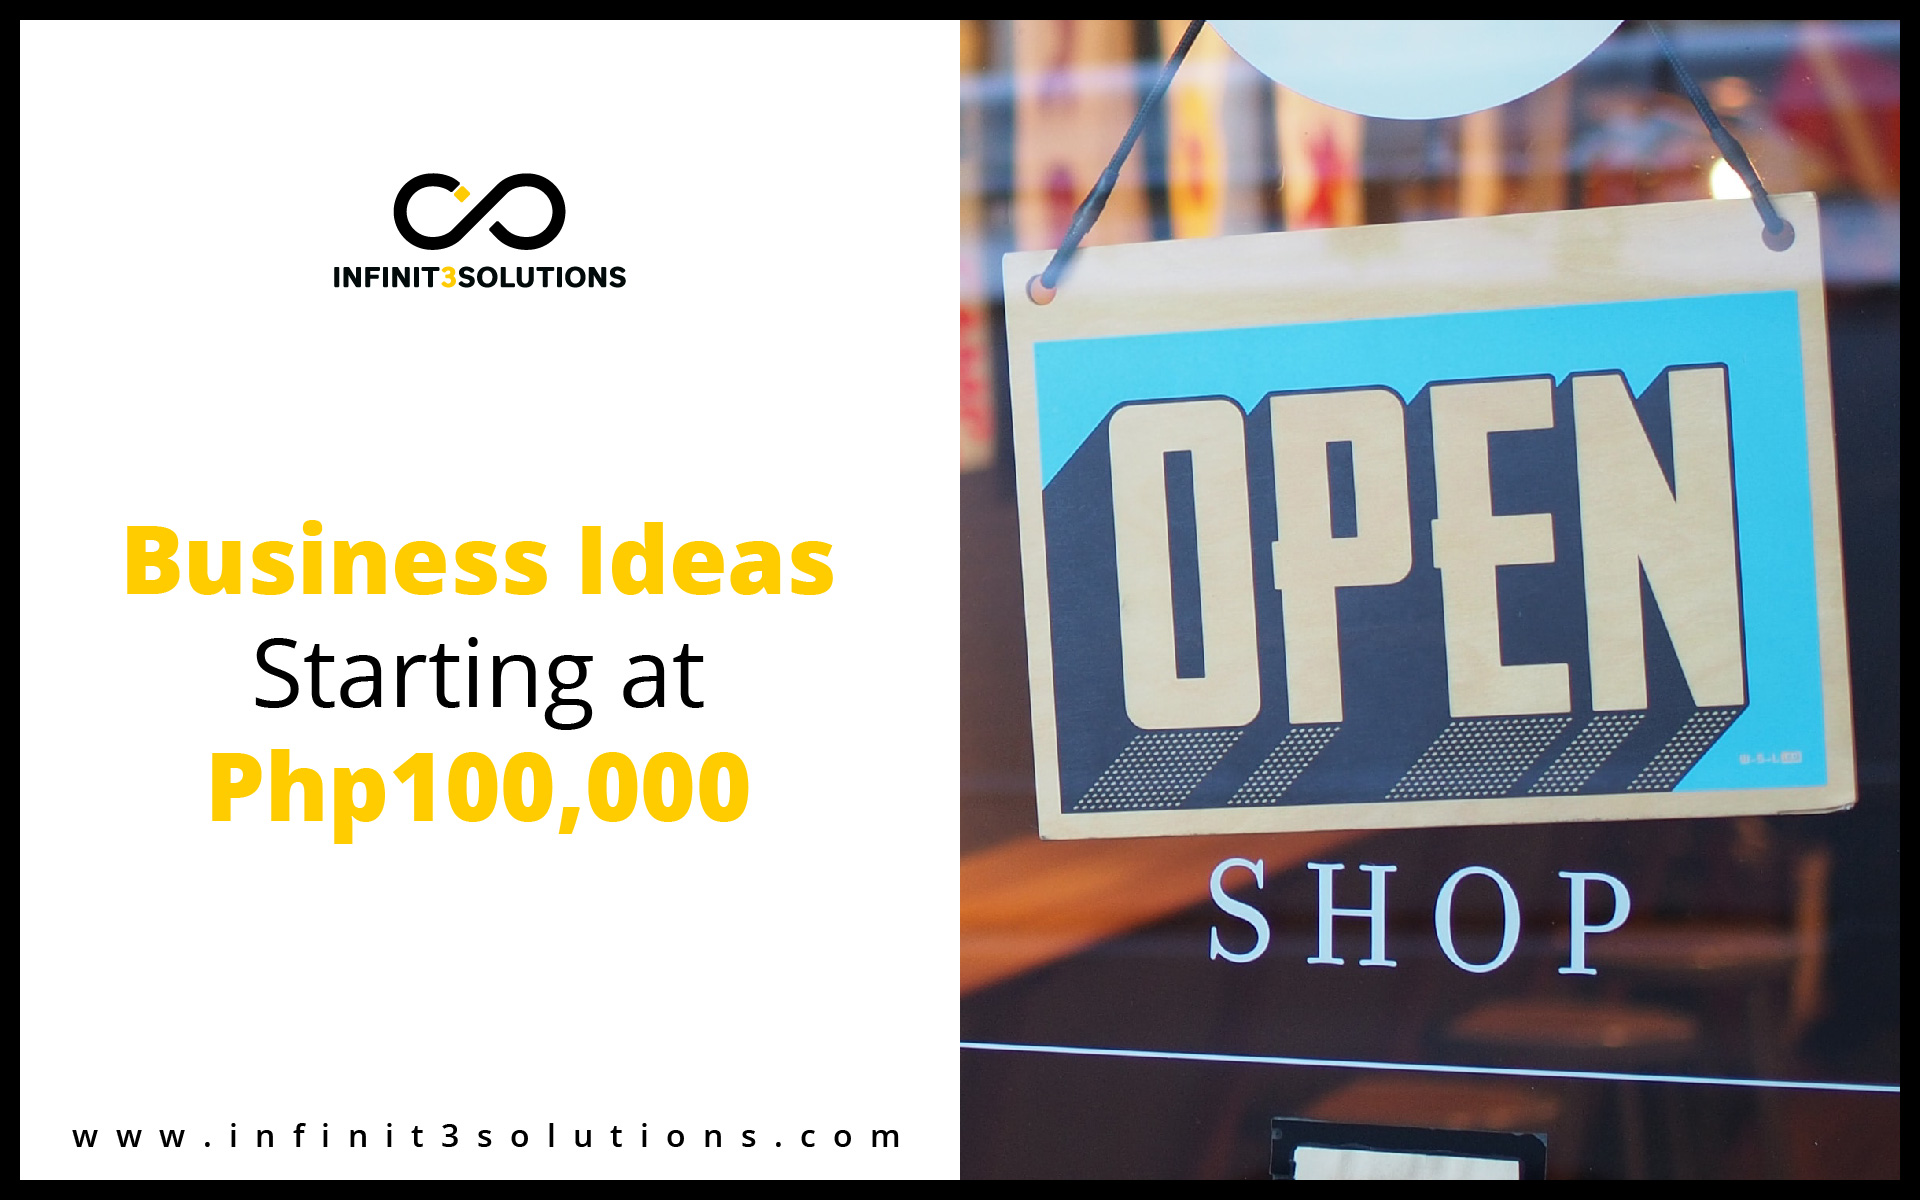 Business Ideas in the Philippines Starting at Php100,000